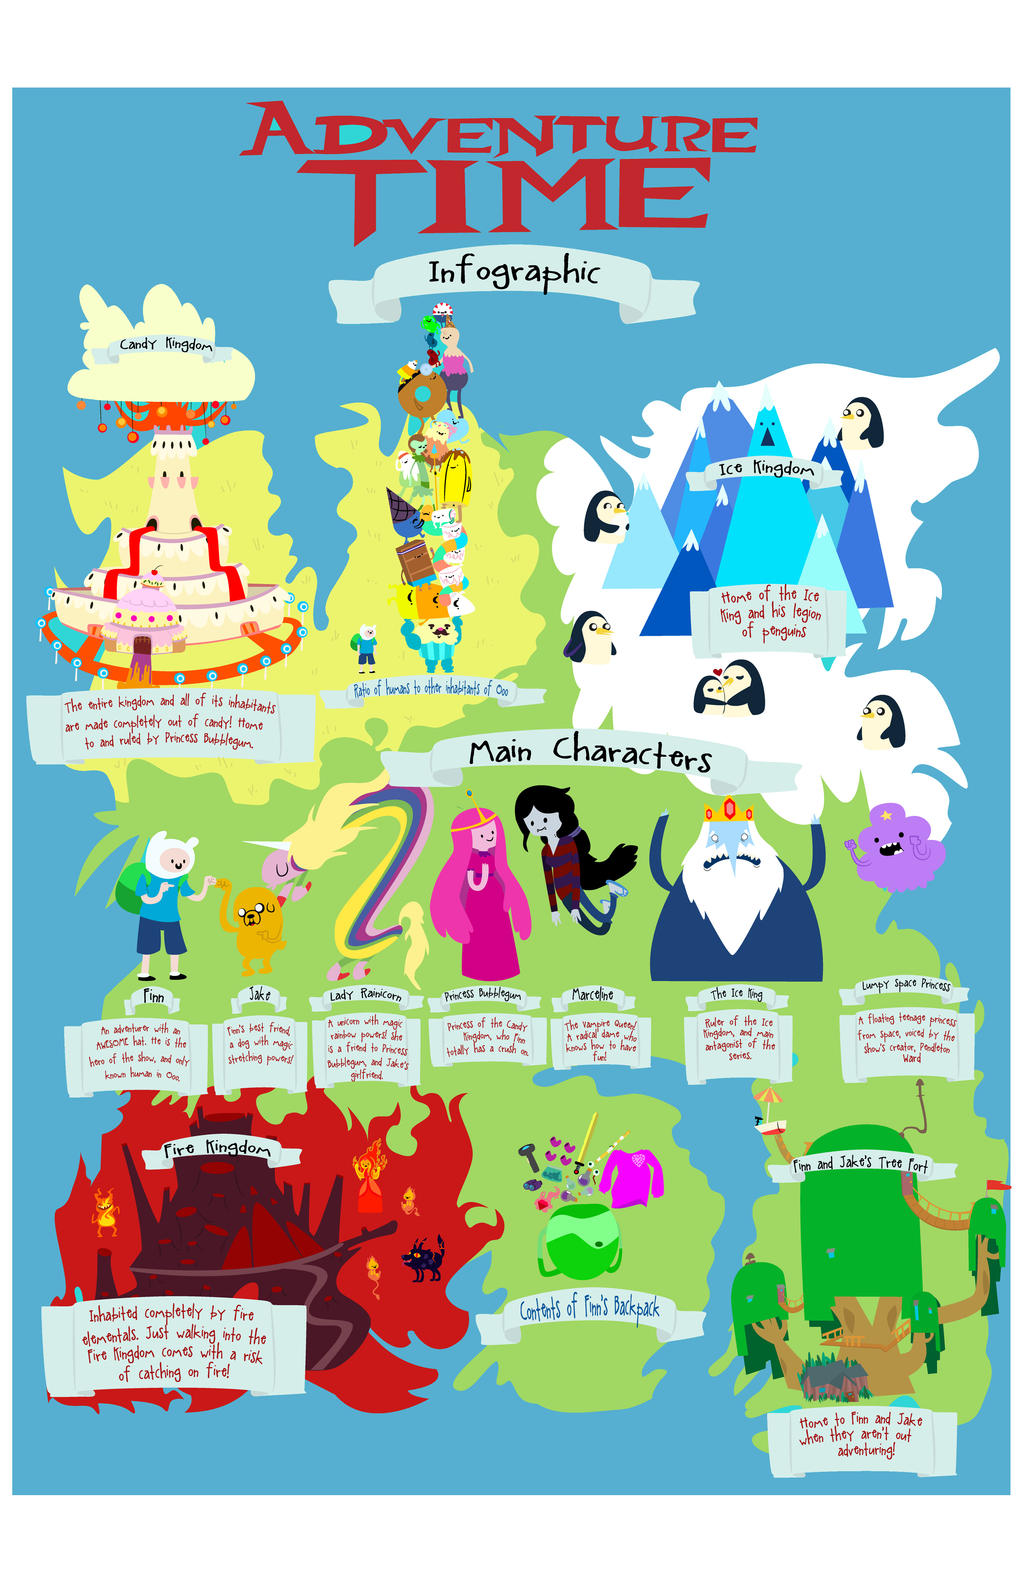 Adventure Time Infographic by radtastical